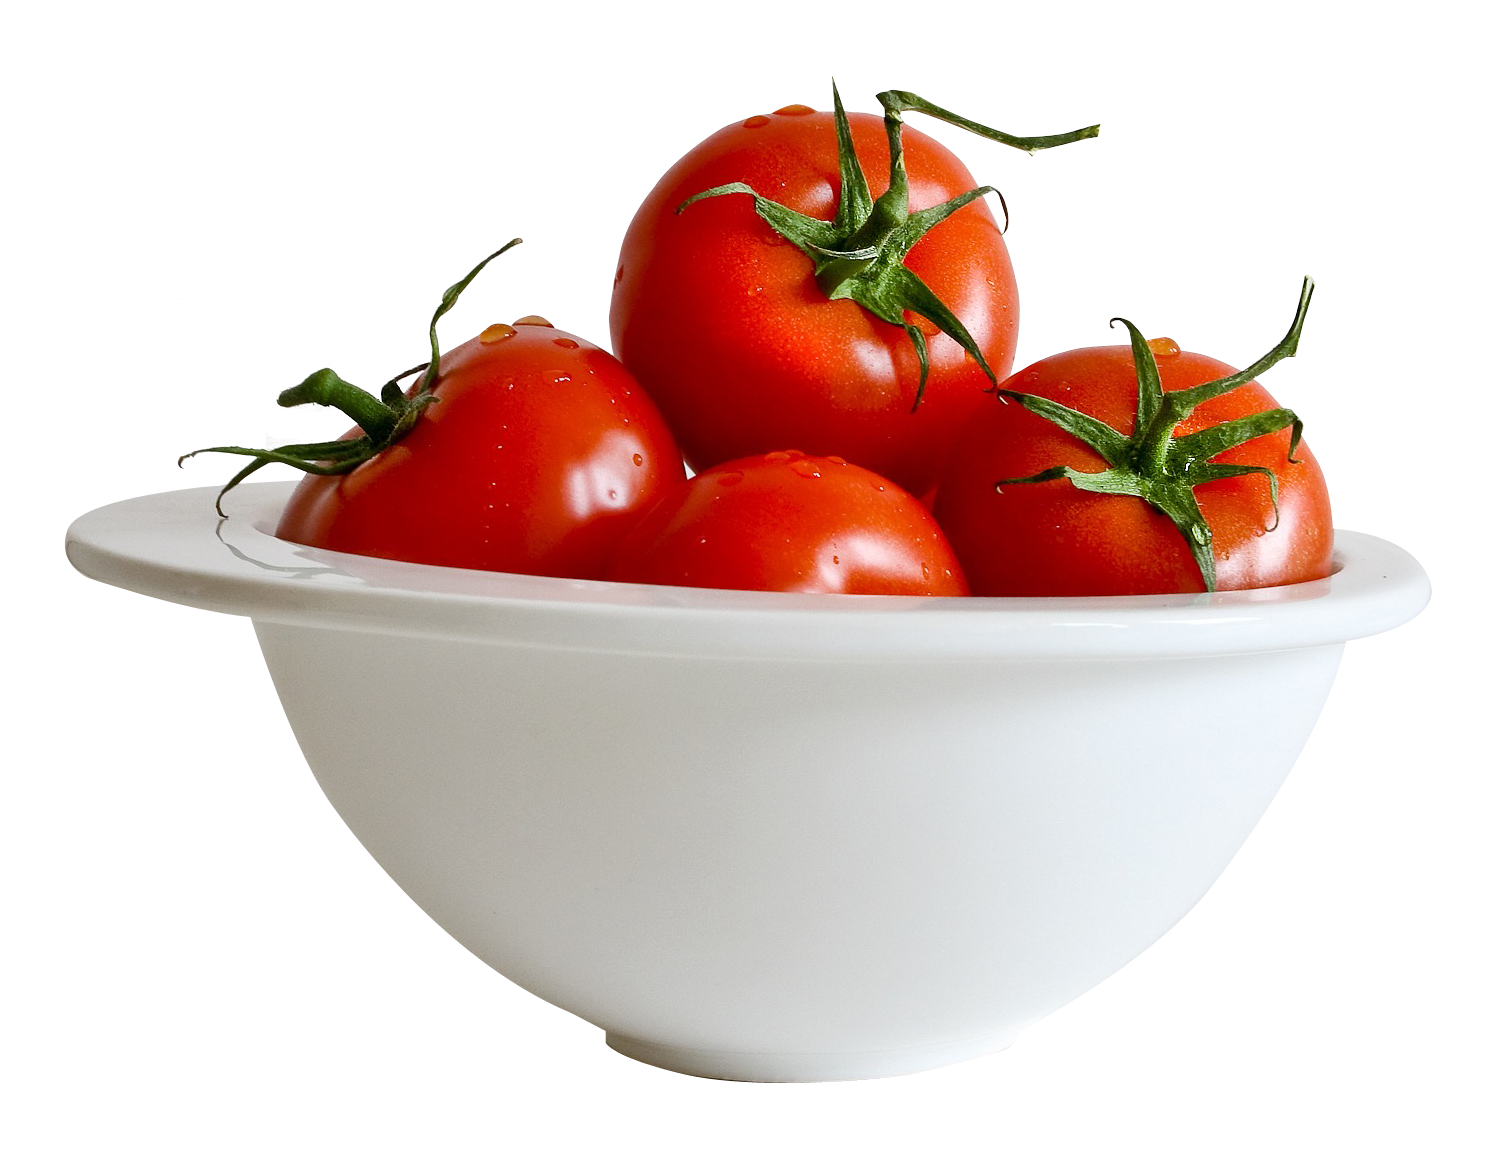 Tomatoes clipart sliced tomato. In bowl png image